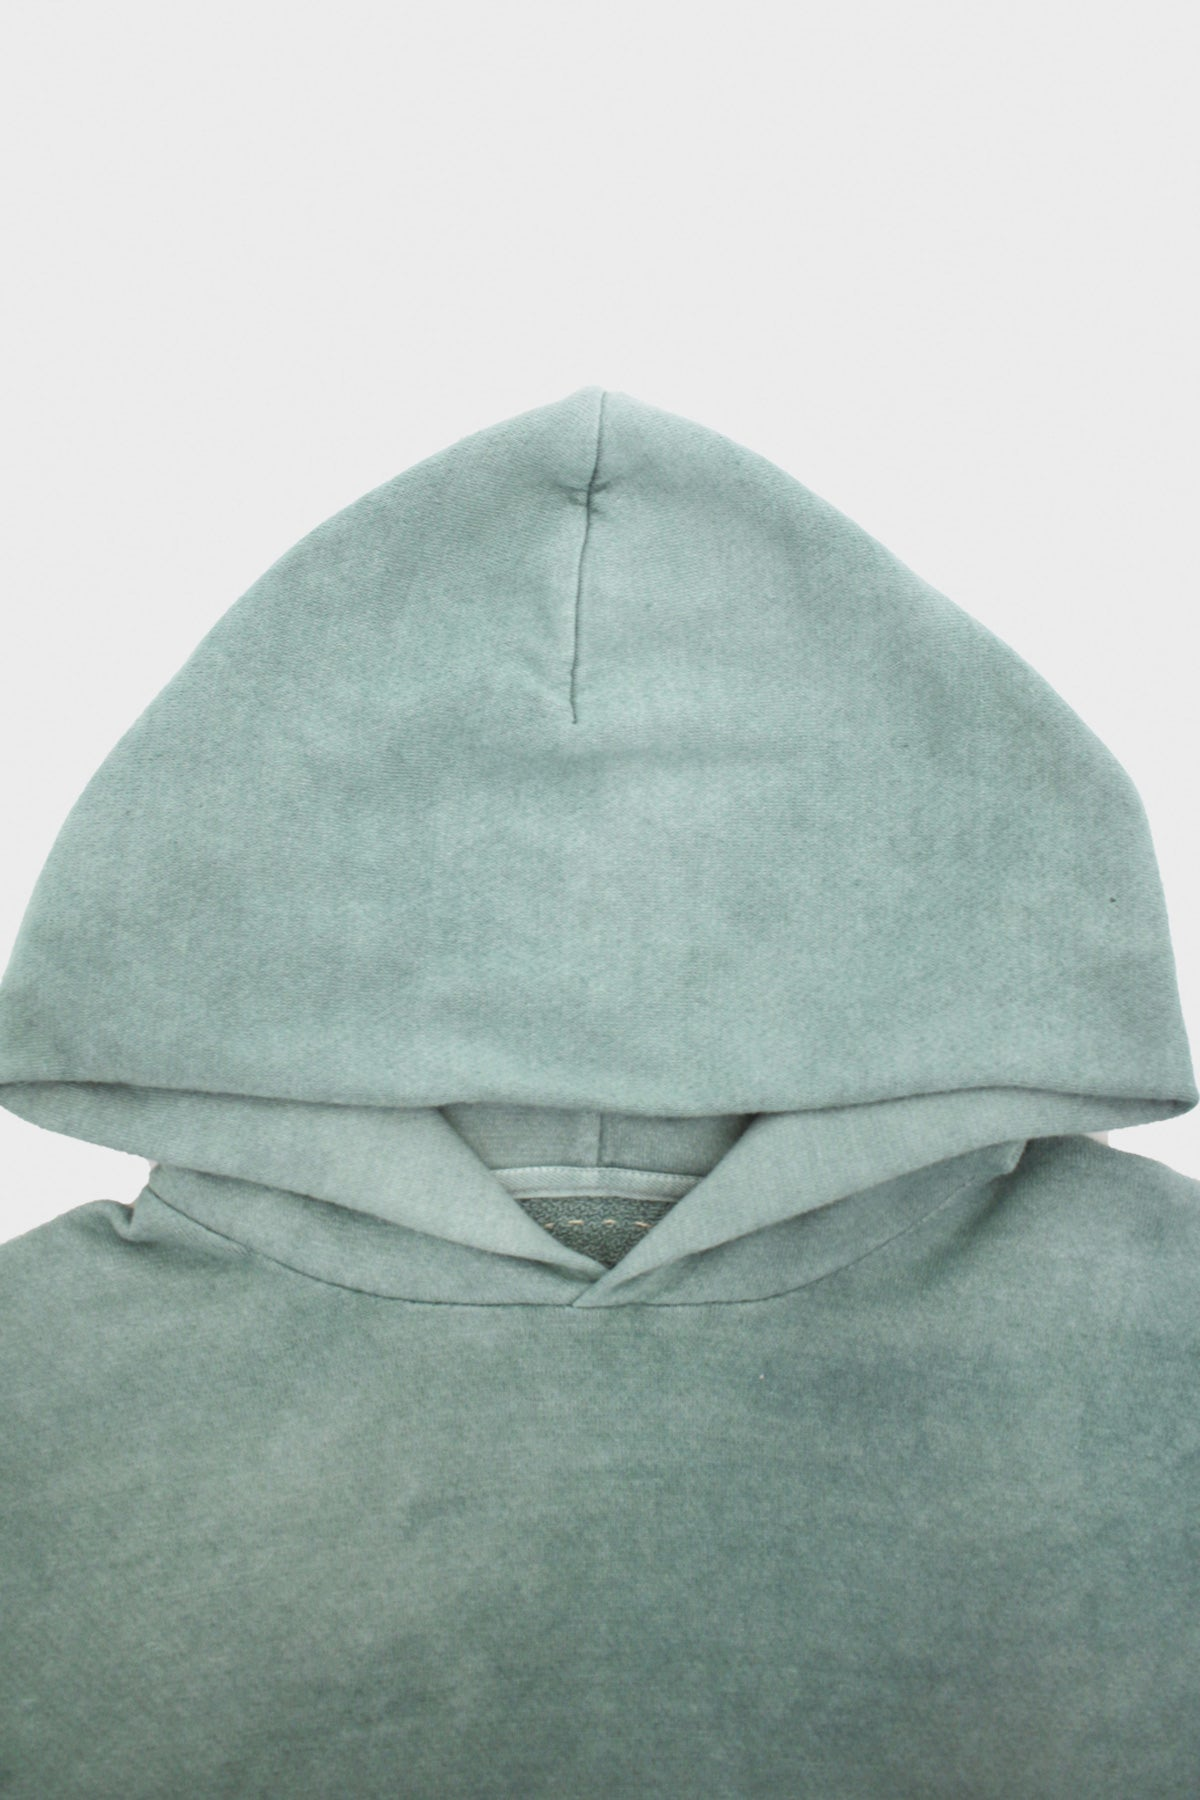 Visvim - Jumbo Hoodie P.O. Uneven Dye - Light Grey - Canoe Club